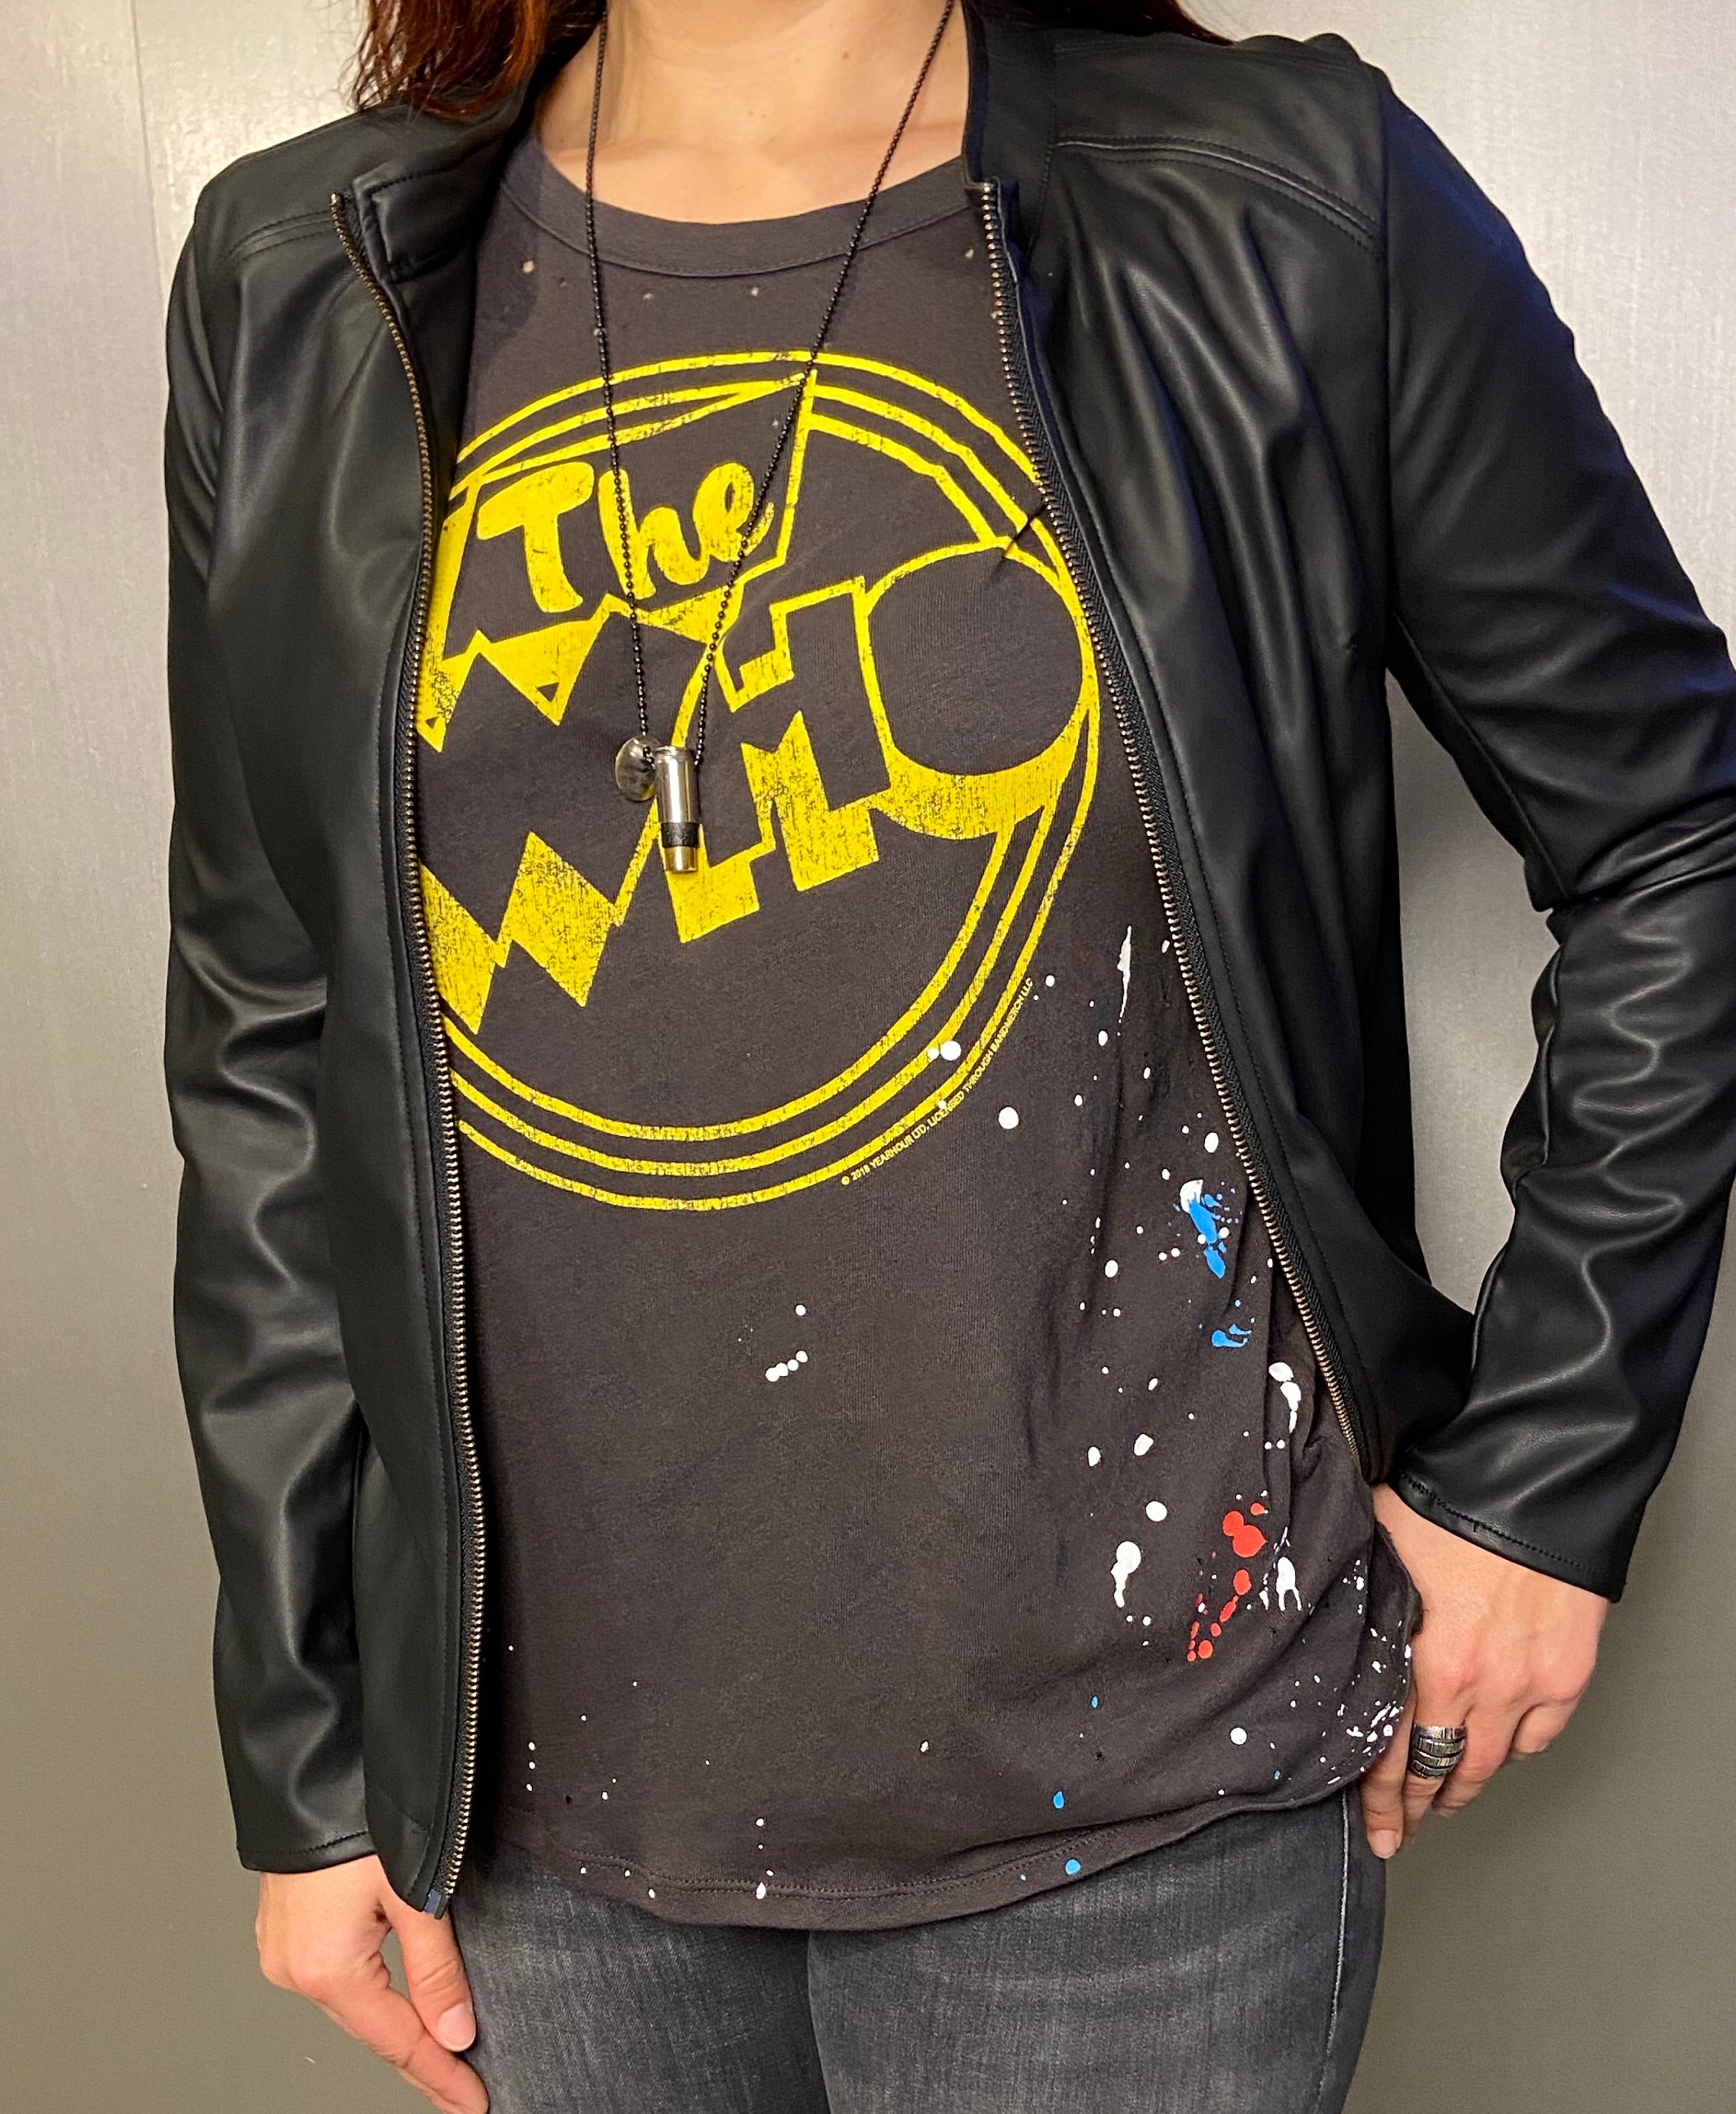 """The Who"" paint splatter tee"